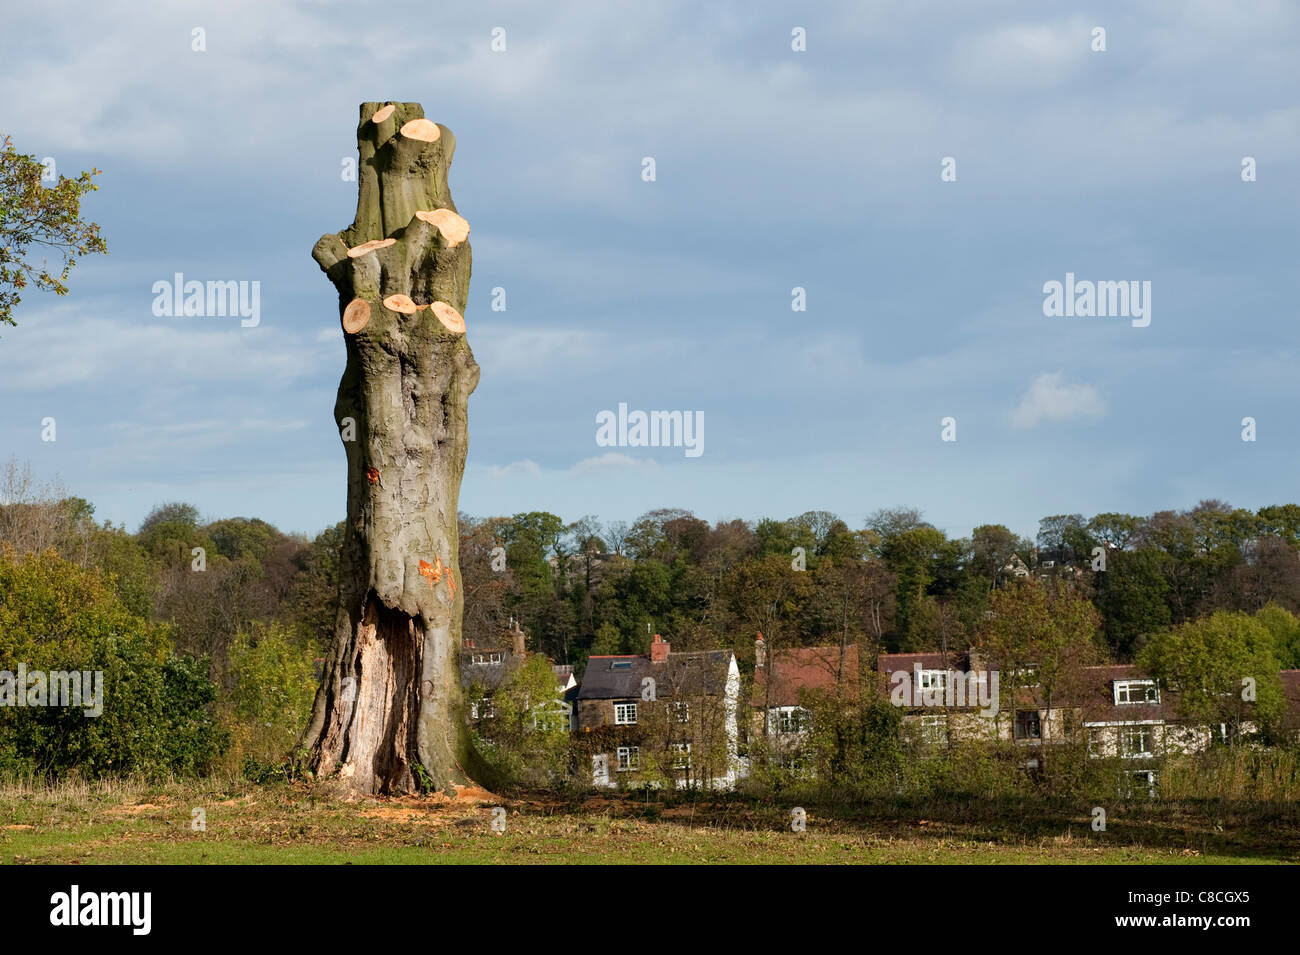 Tall large fully pruned mature tree on the brow of a small parkland hill with housing in the background - Stock Image